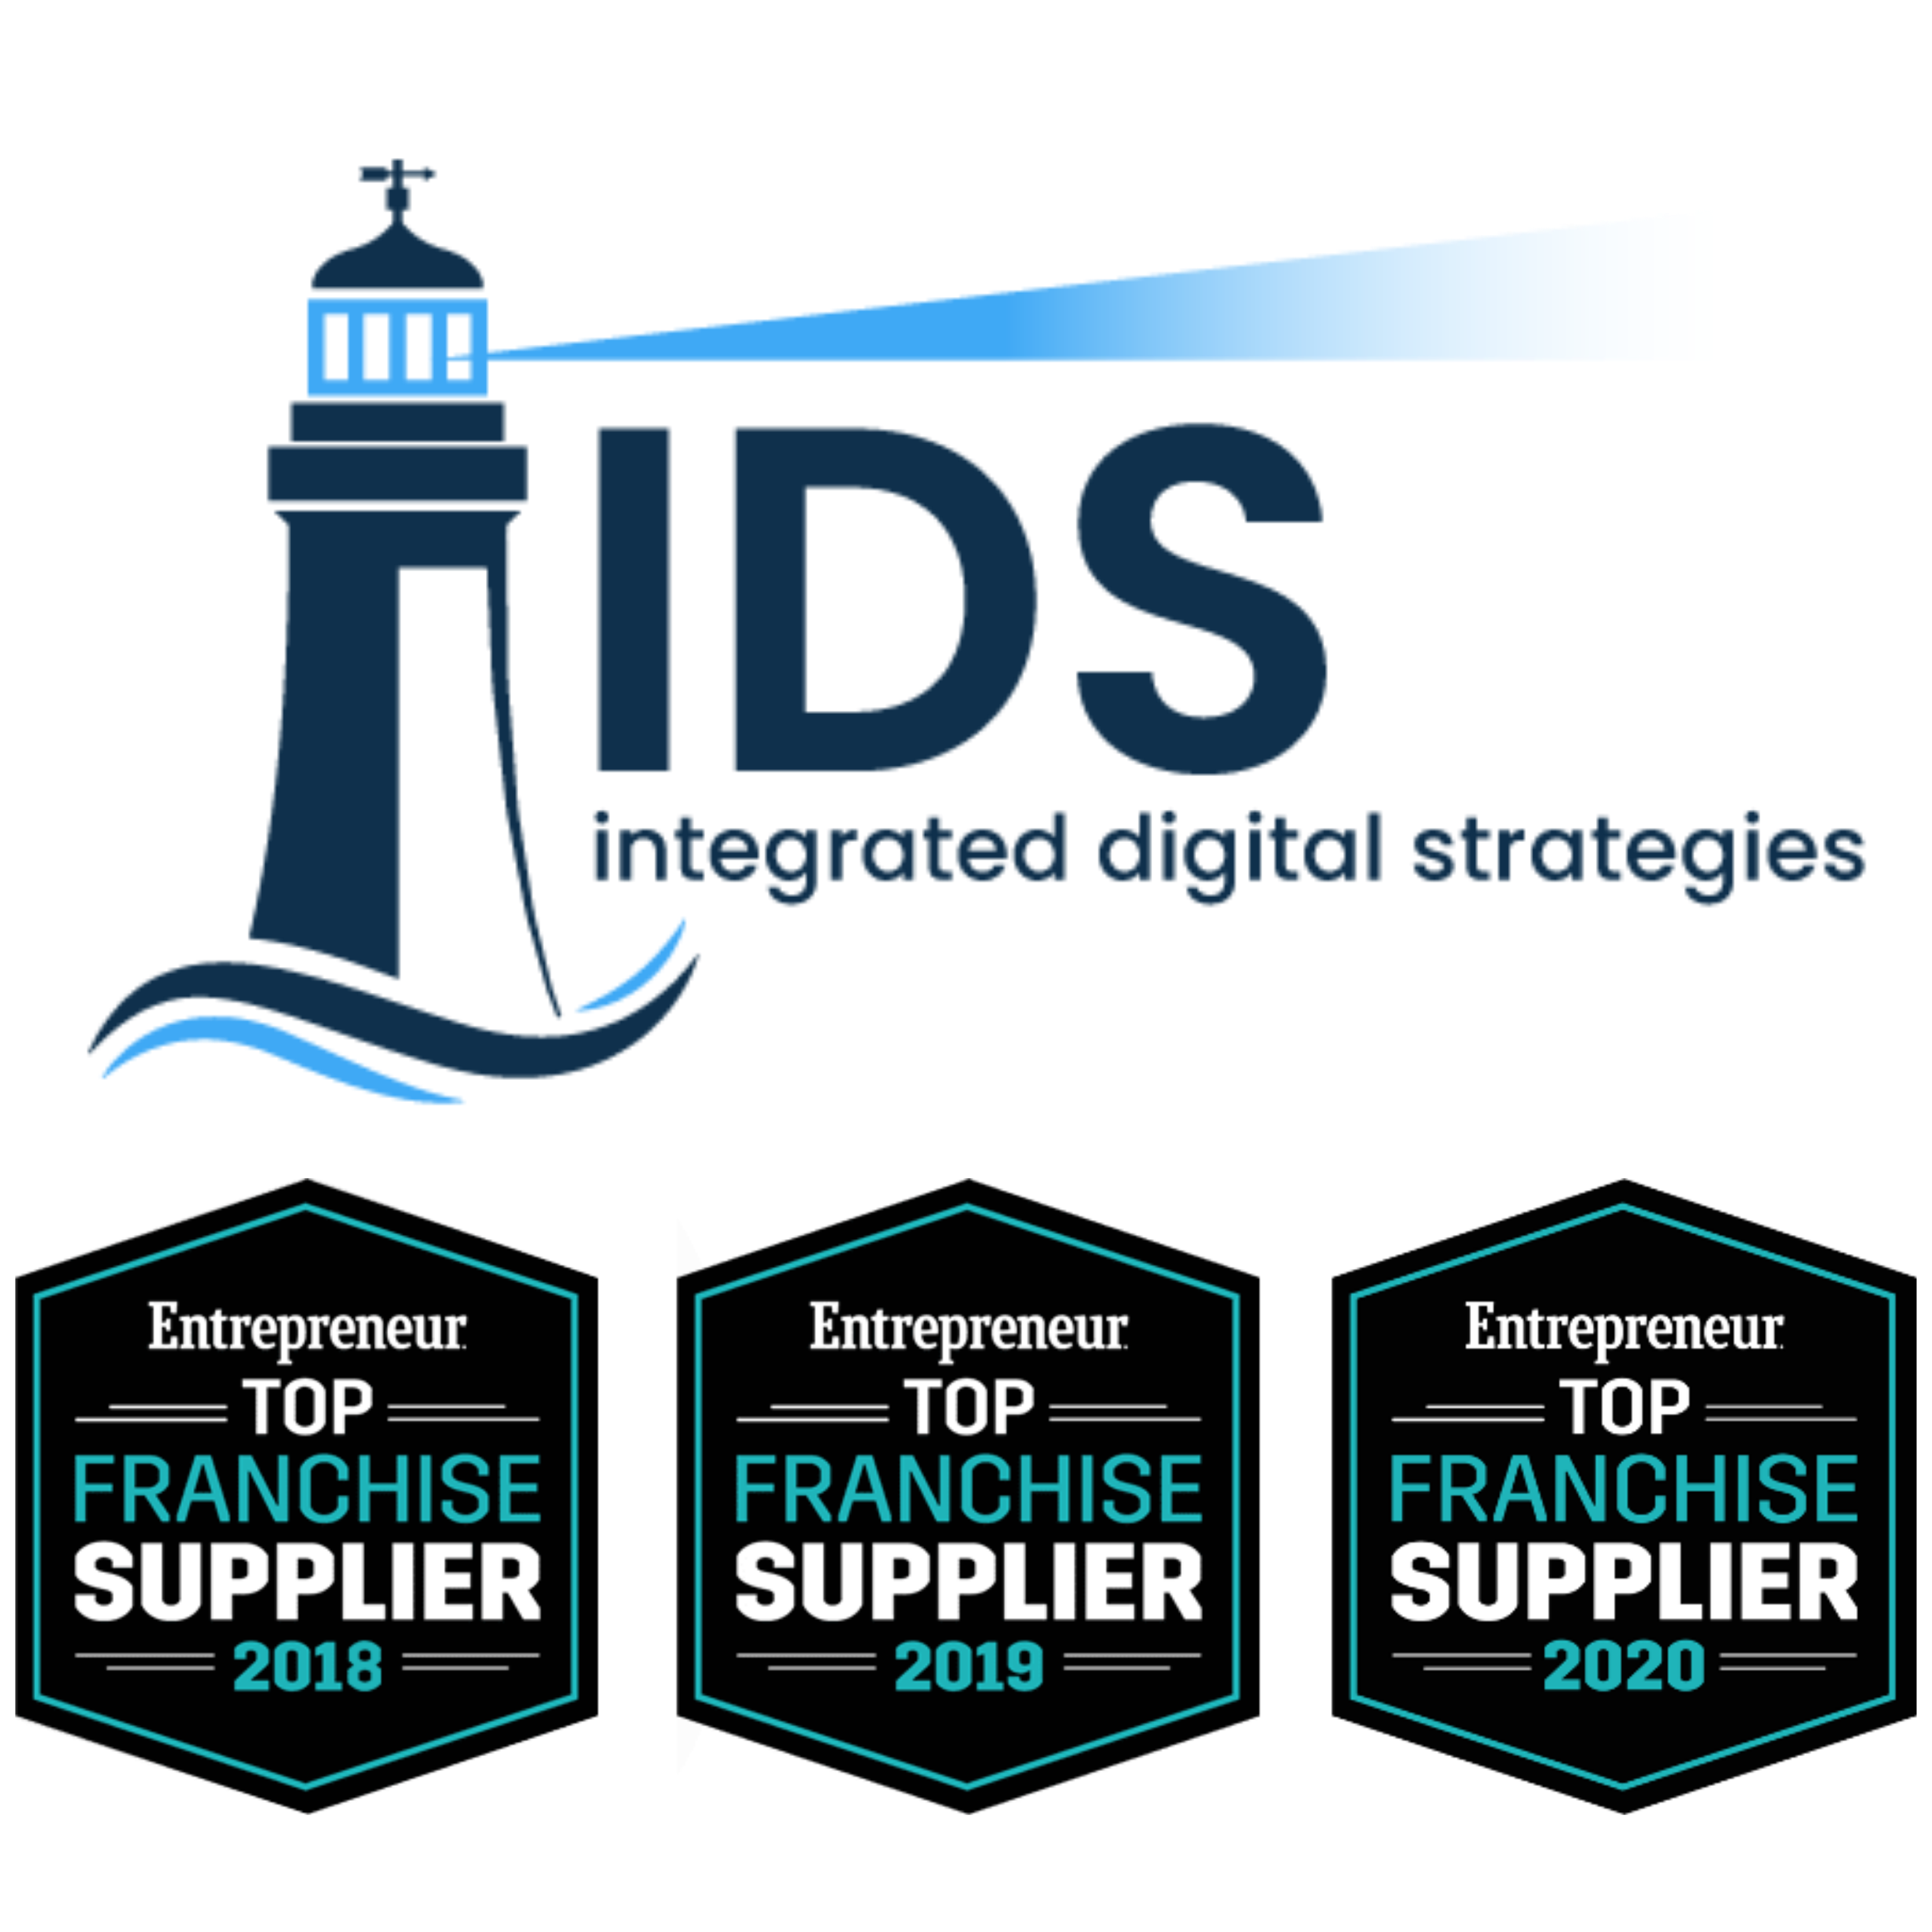 Integrated Digital Strategies recognized by Entrepreneur as a Top Franchise Supplier for three straight years